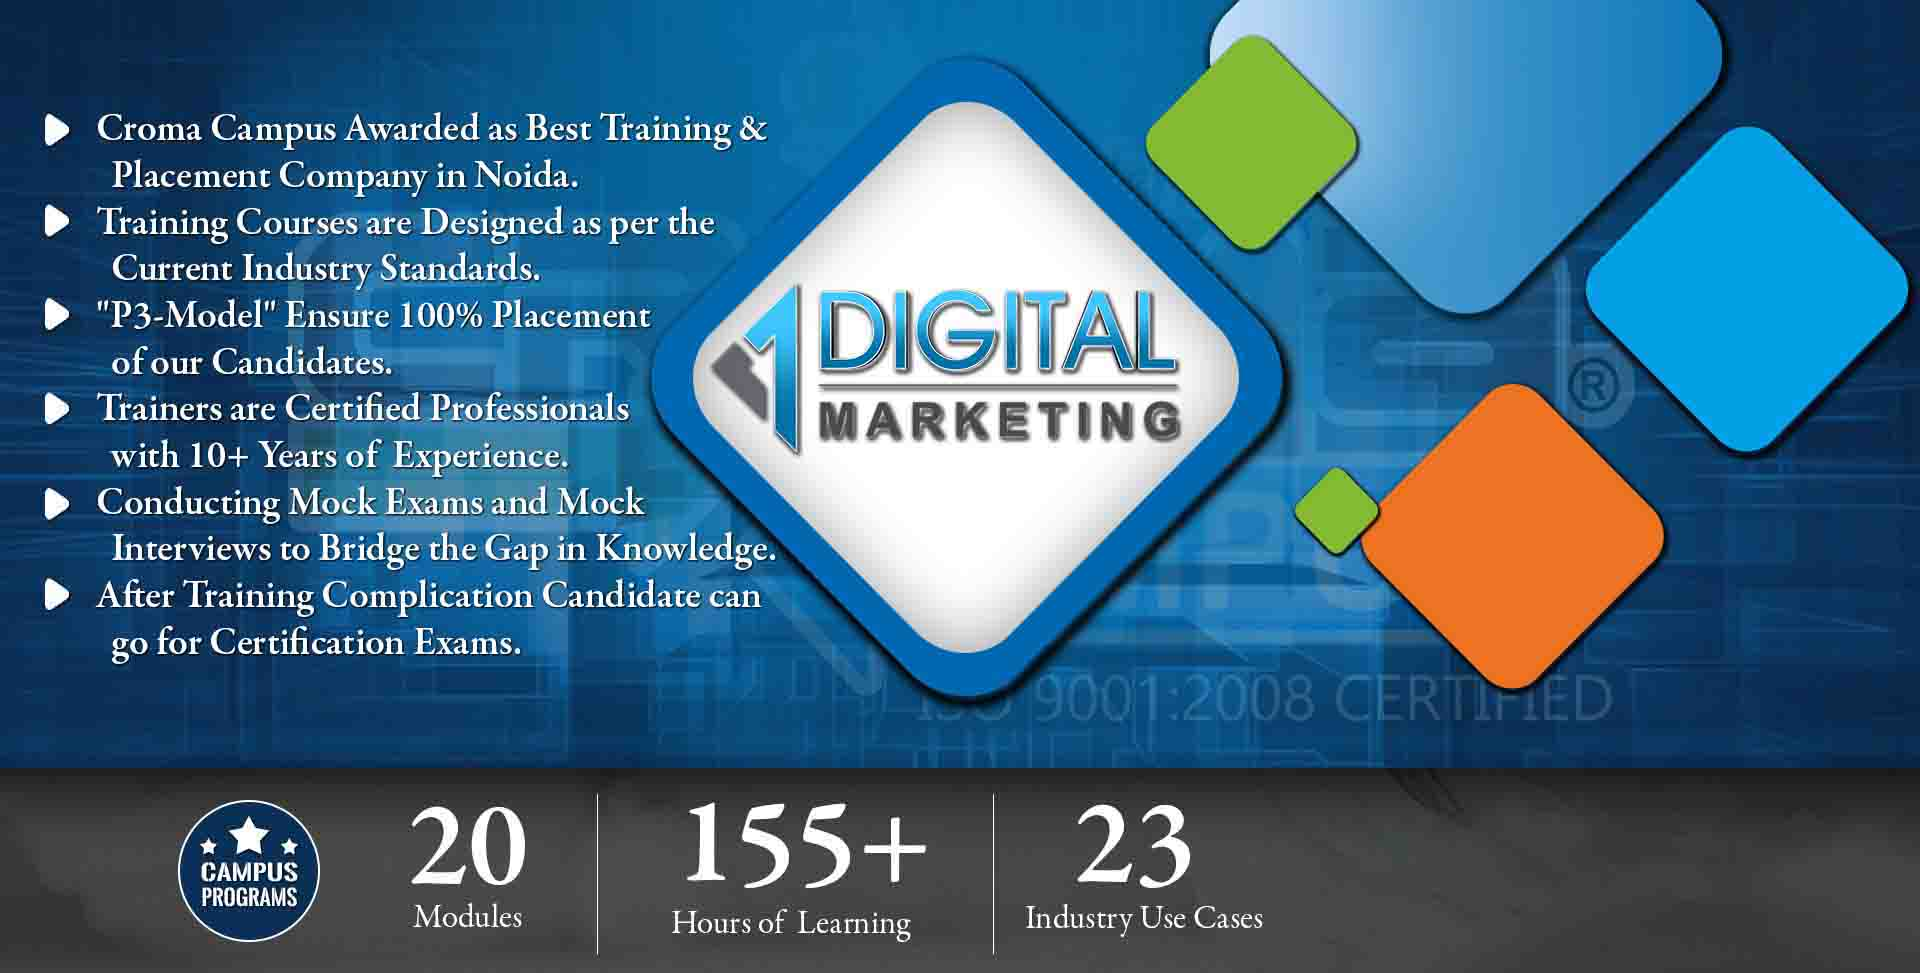 disgital-marketing-training-croma-campus.jpg